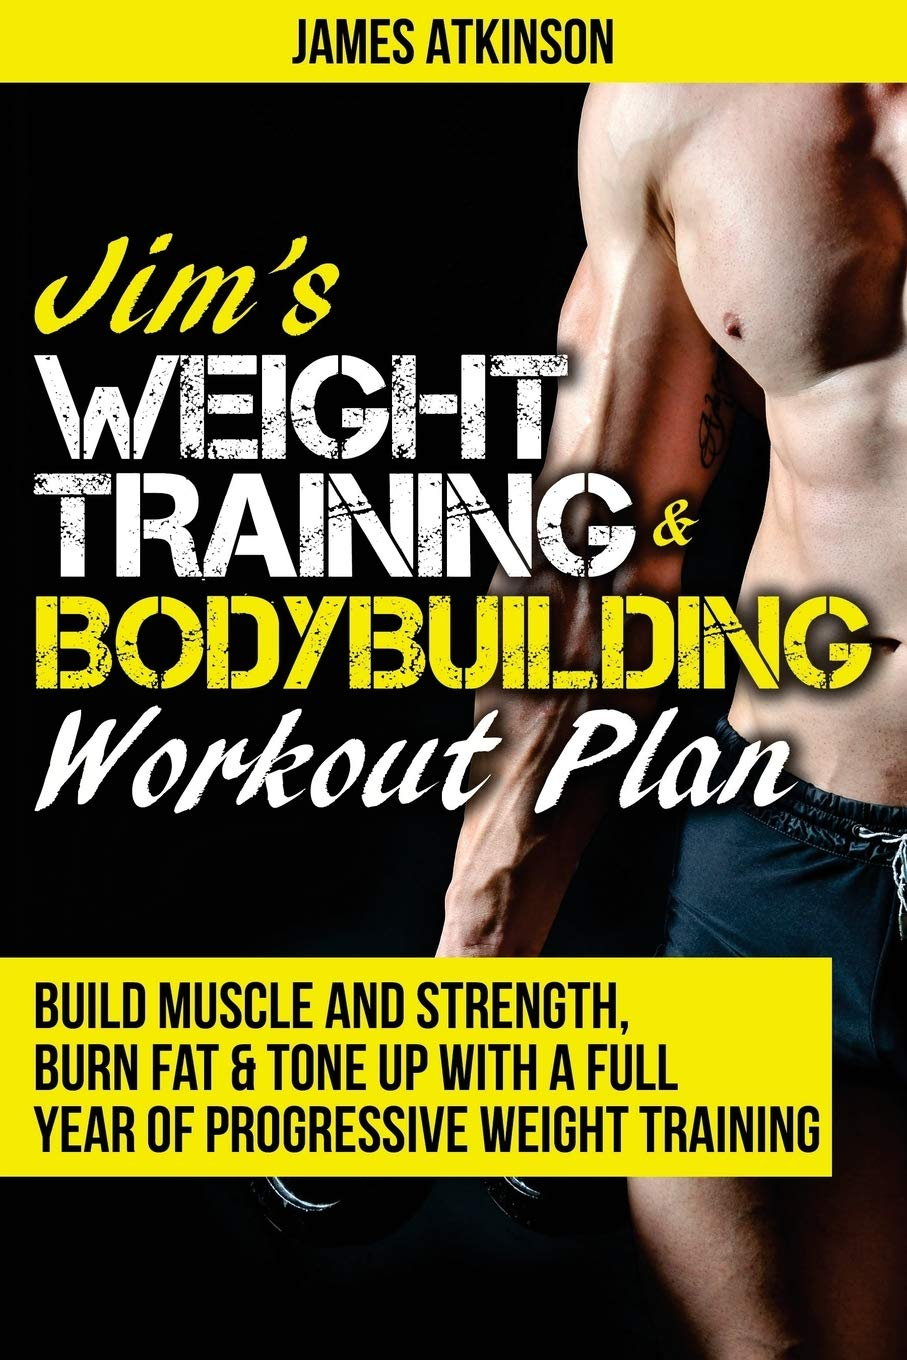 bodybuilding clothing uk Reviewed: What Can One Learn From Other's Mistakes